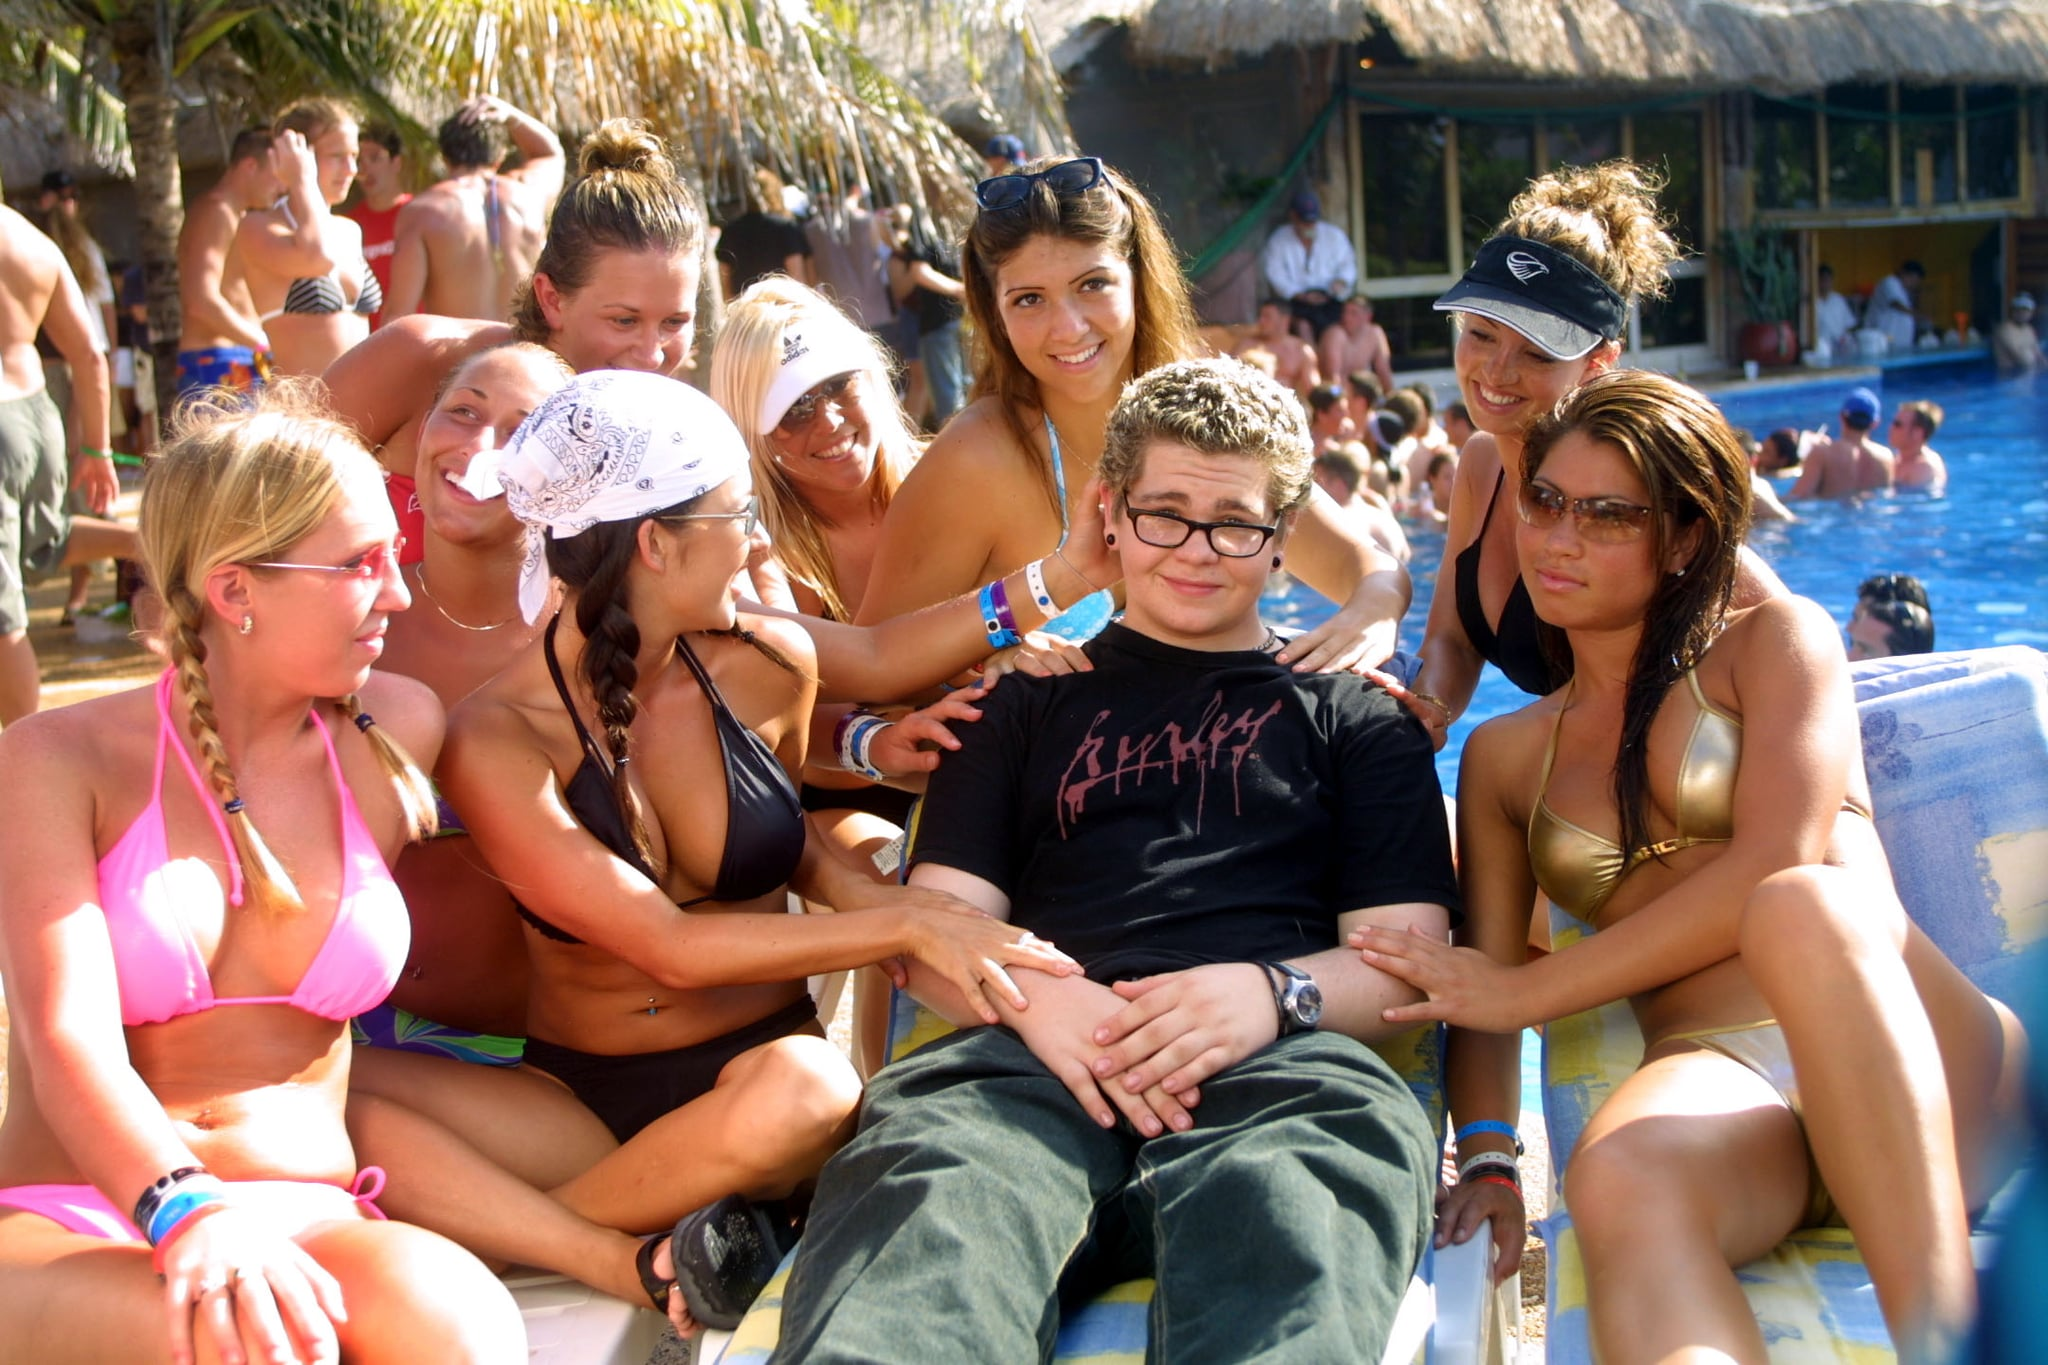 2002: Jack Osbourne is surrounded by bikini-clad ladies in Cancun.